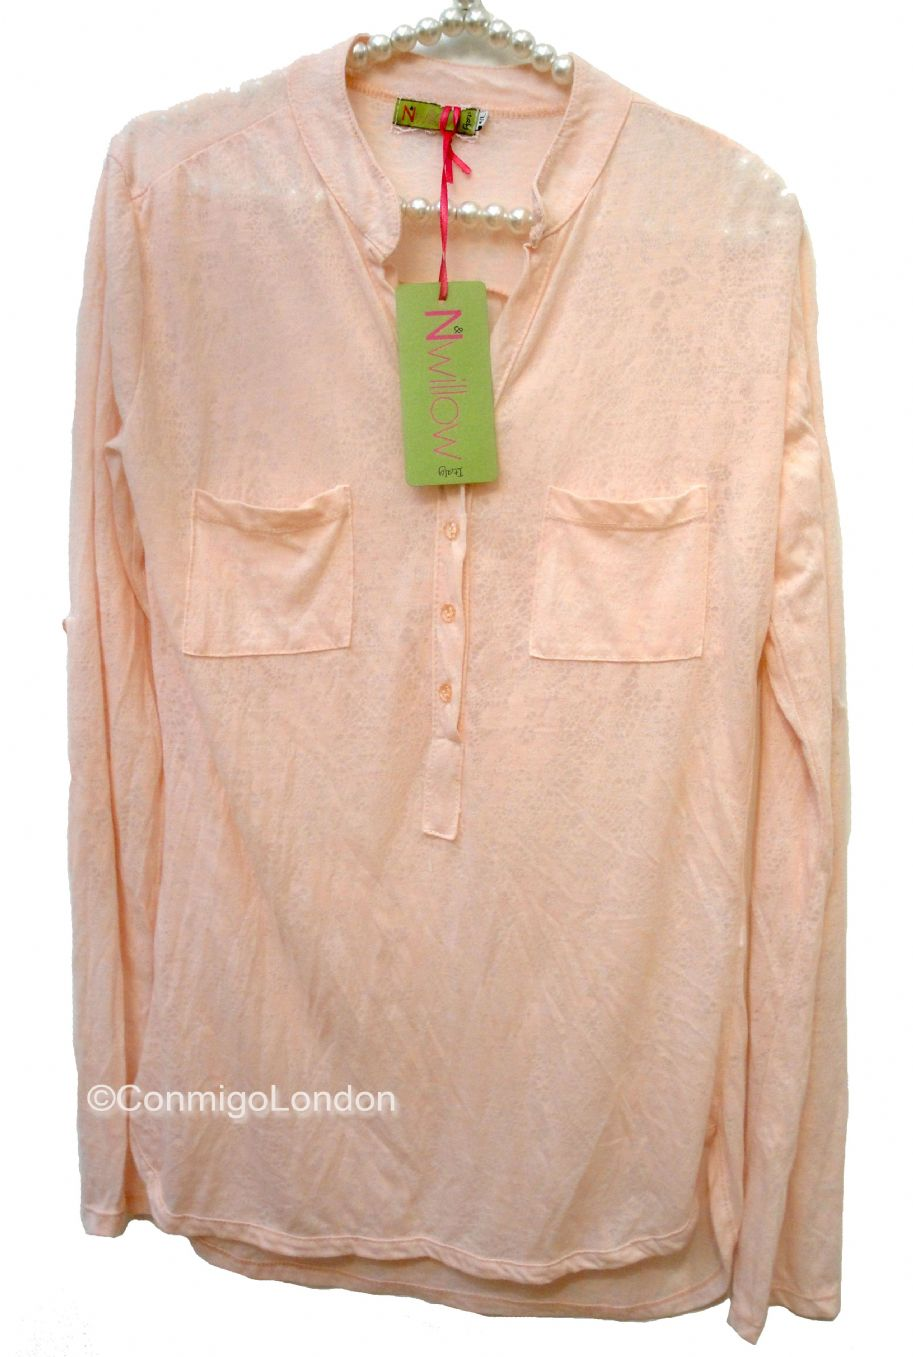 http://www.conmigolondon.co.uk/ekmps/shops/conmigo/images/n-willow-sorty-button-shirt-peach-pink-made-in-italy-colour-pink-size-s-m-7022-p.jpg